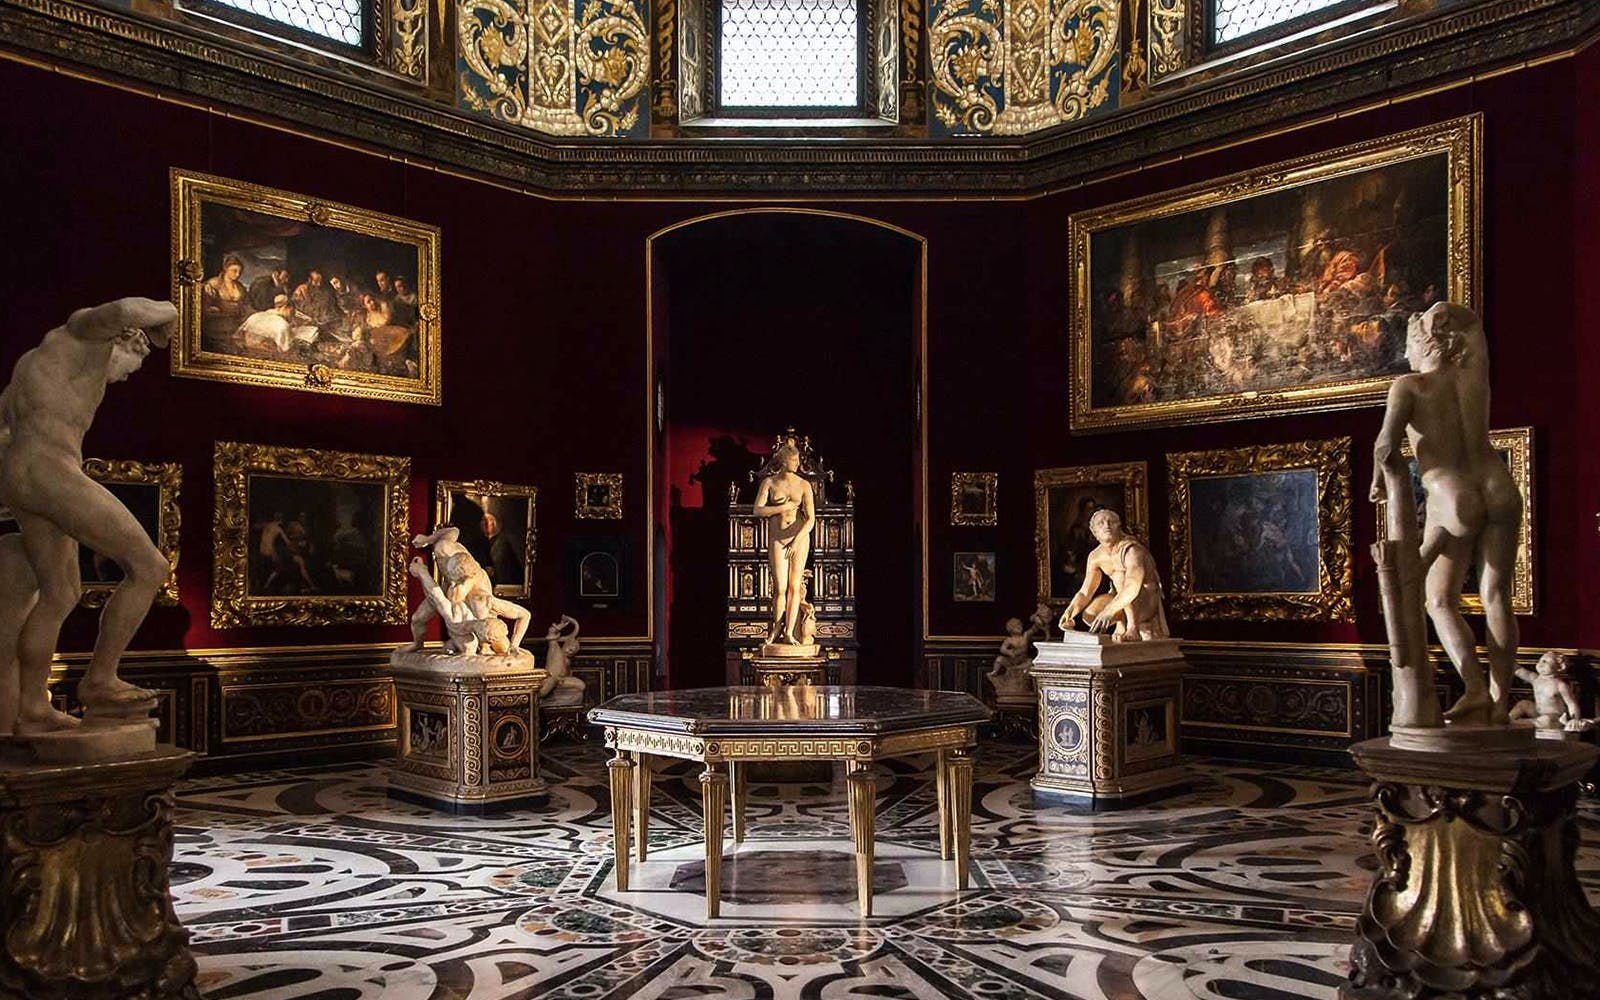 skip the line access to the uffizi gallery with audiopen-1